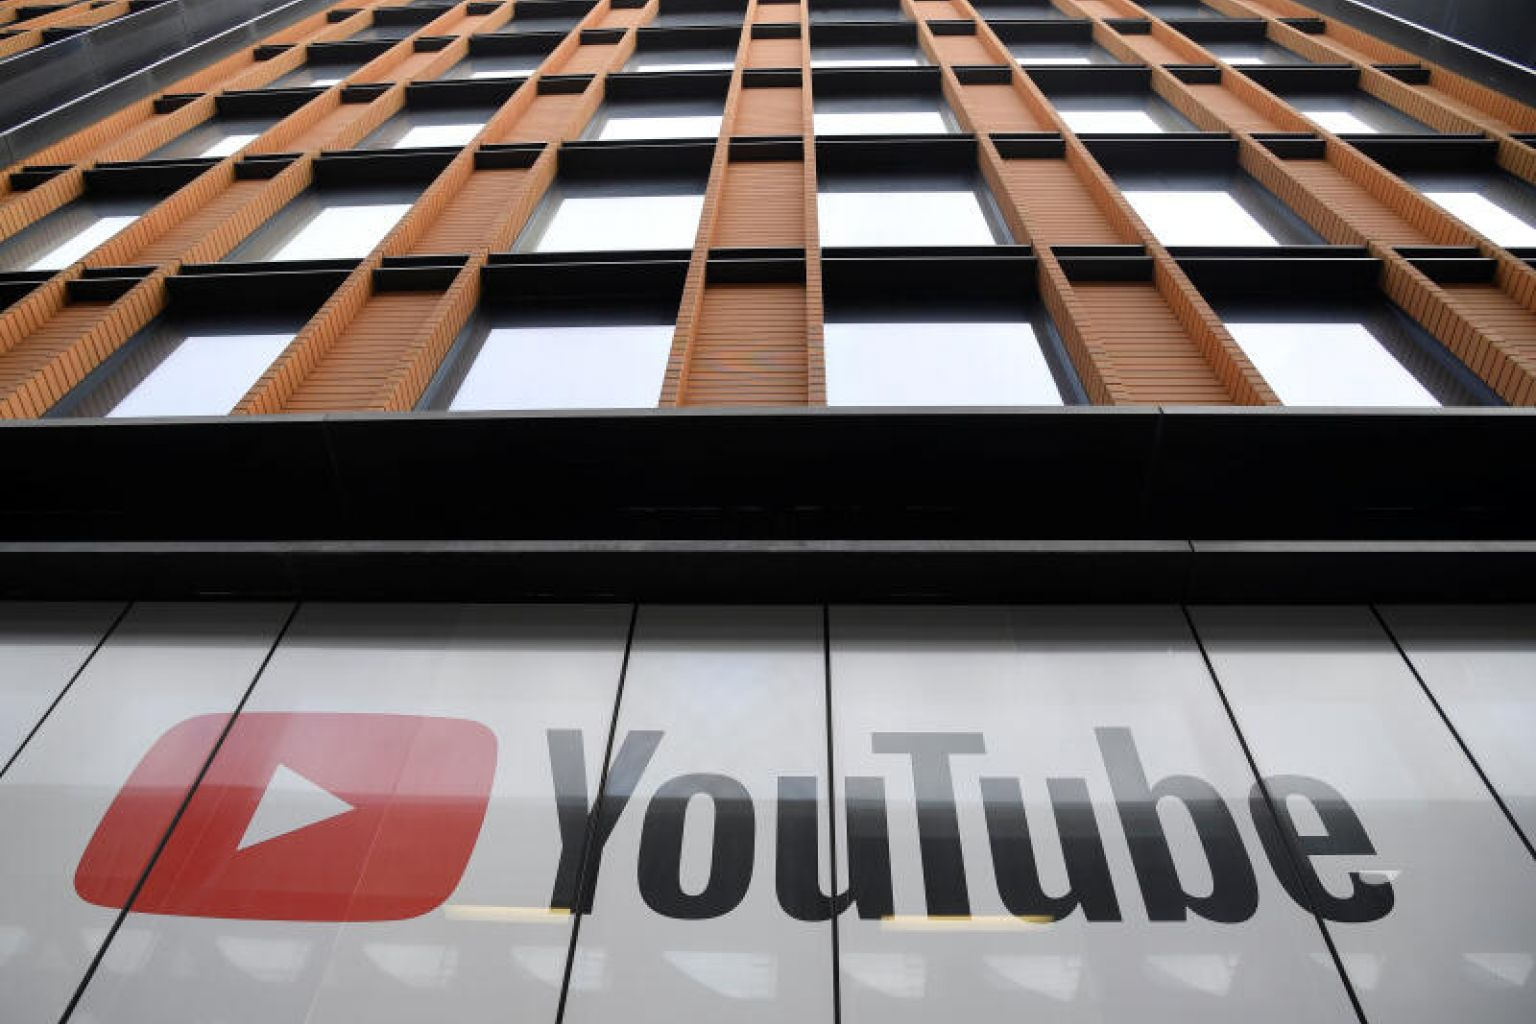 YouTube turns to human moderators again